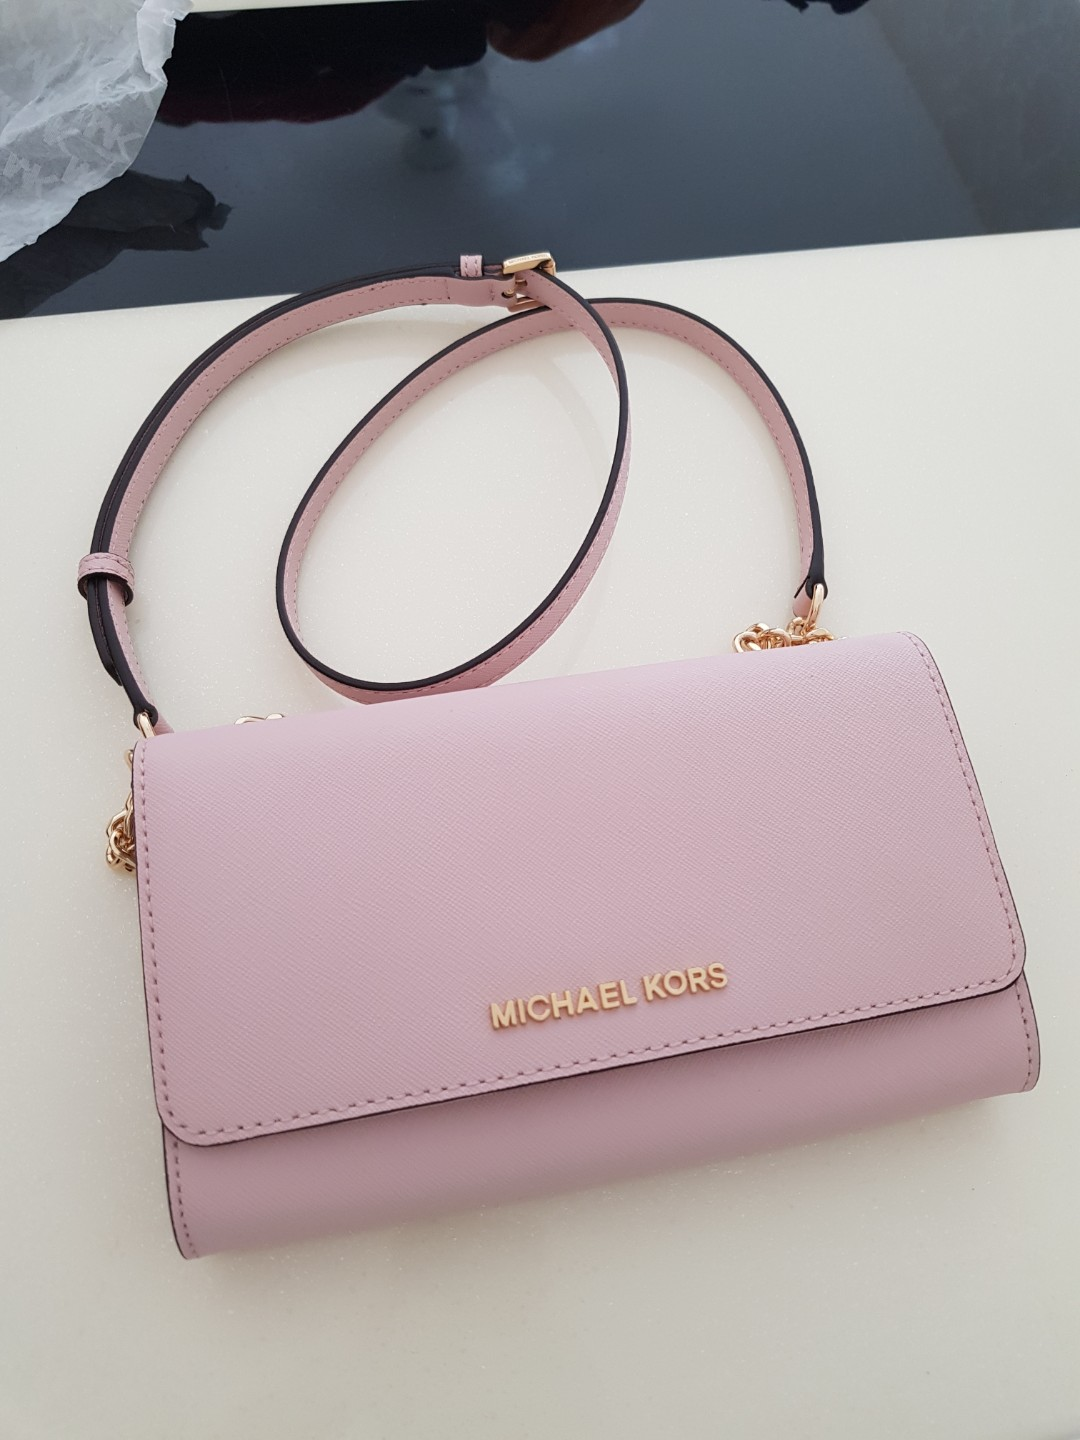 e18c6bc7a1a3 Price Reduce  Michael Kors Baby Pink Sling Bag